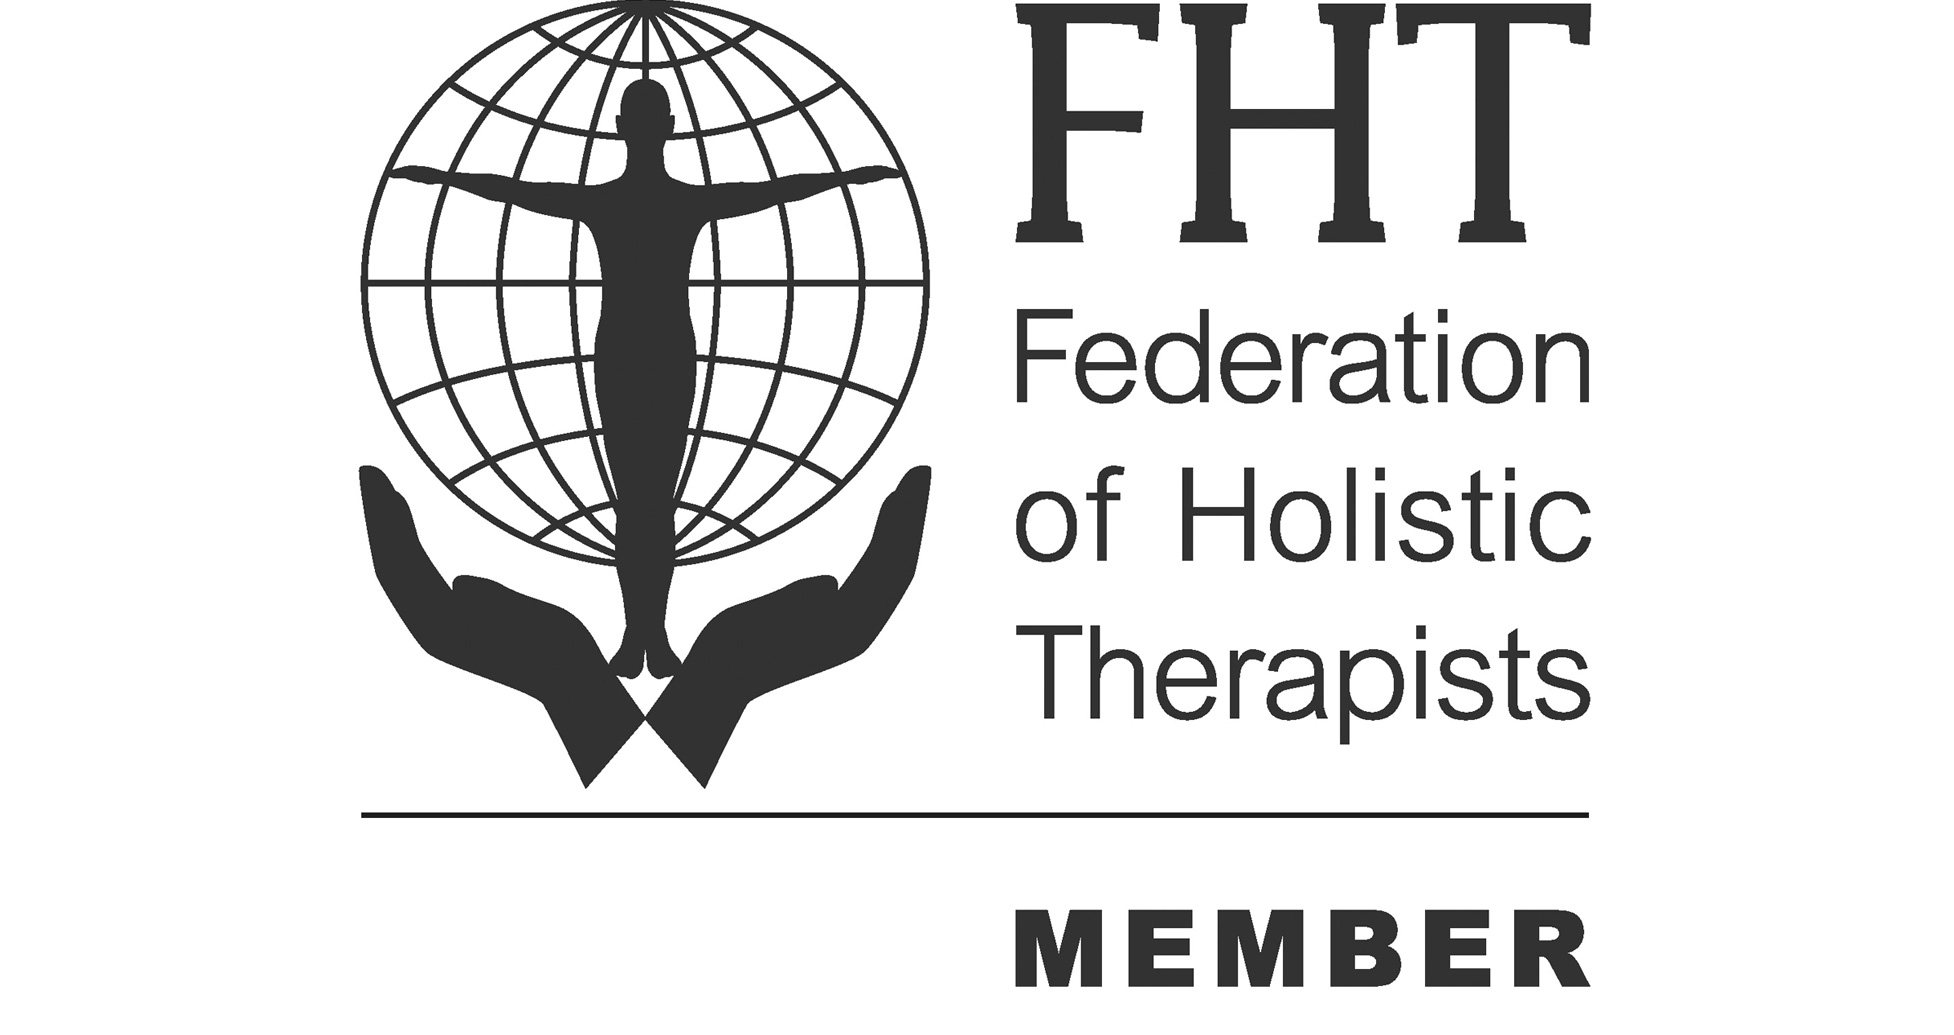 Reef Therapies FHT Member Federation of Holistic Therapists Worthing Therapy Nikki Reef